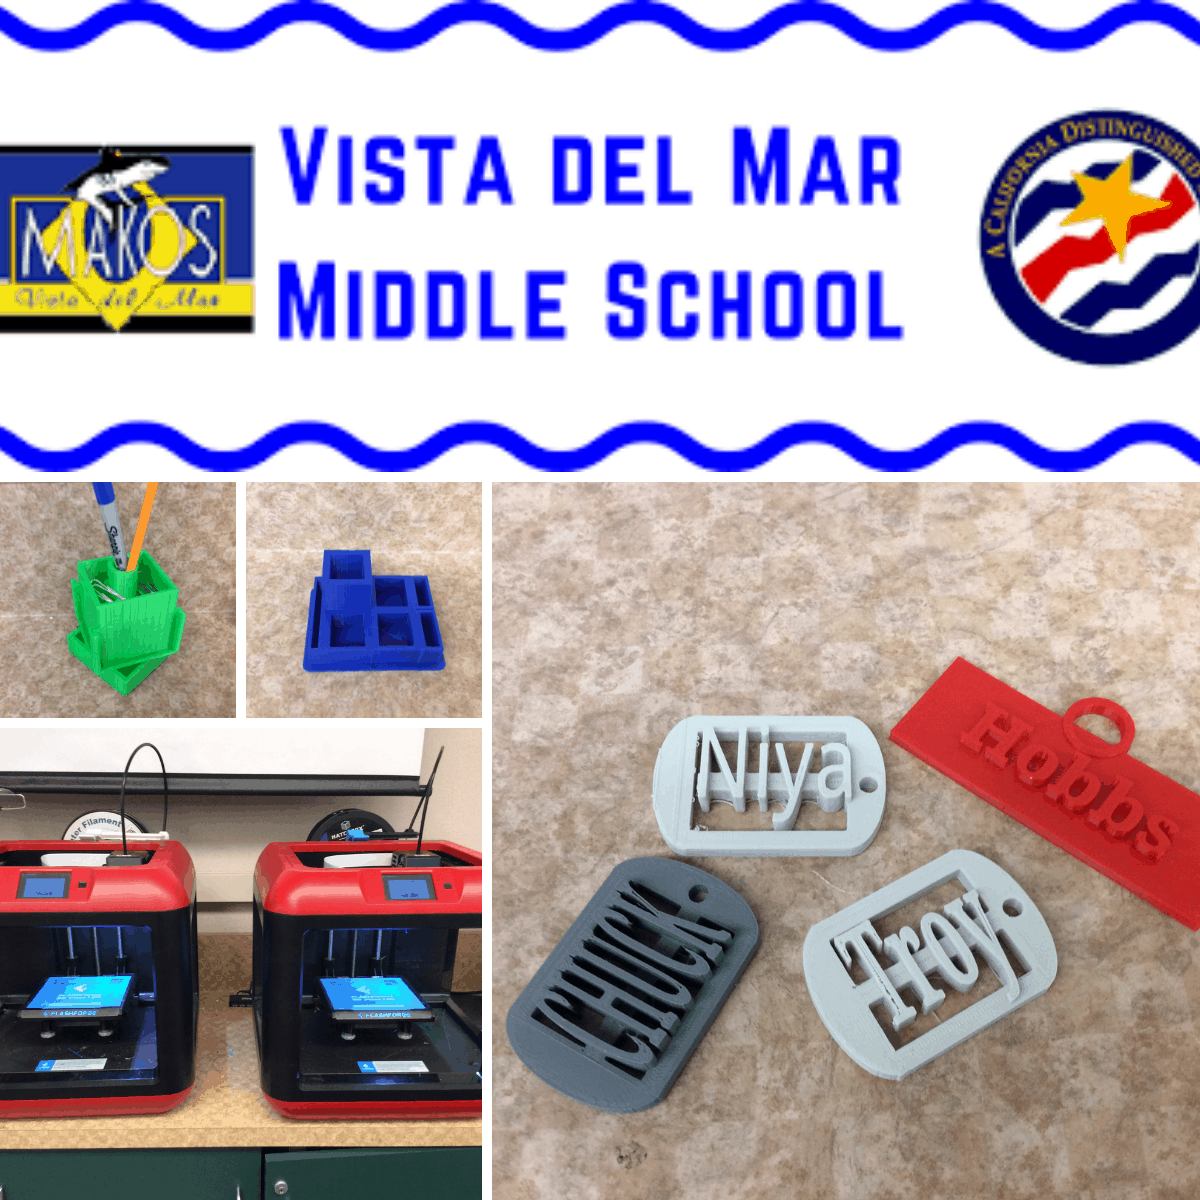 3d printed models from vista del mar middle school